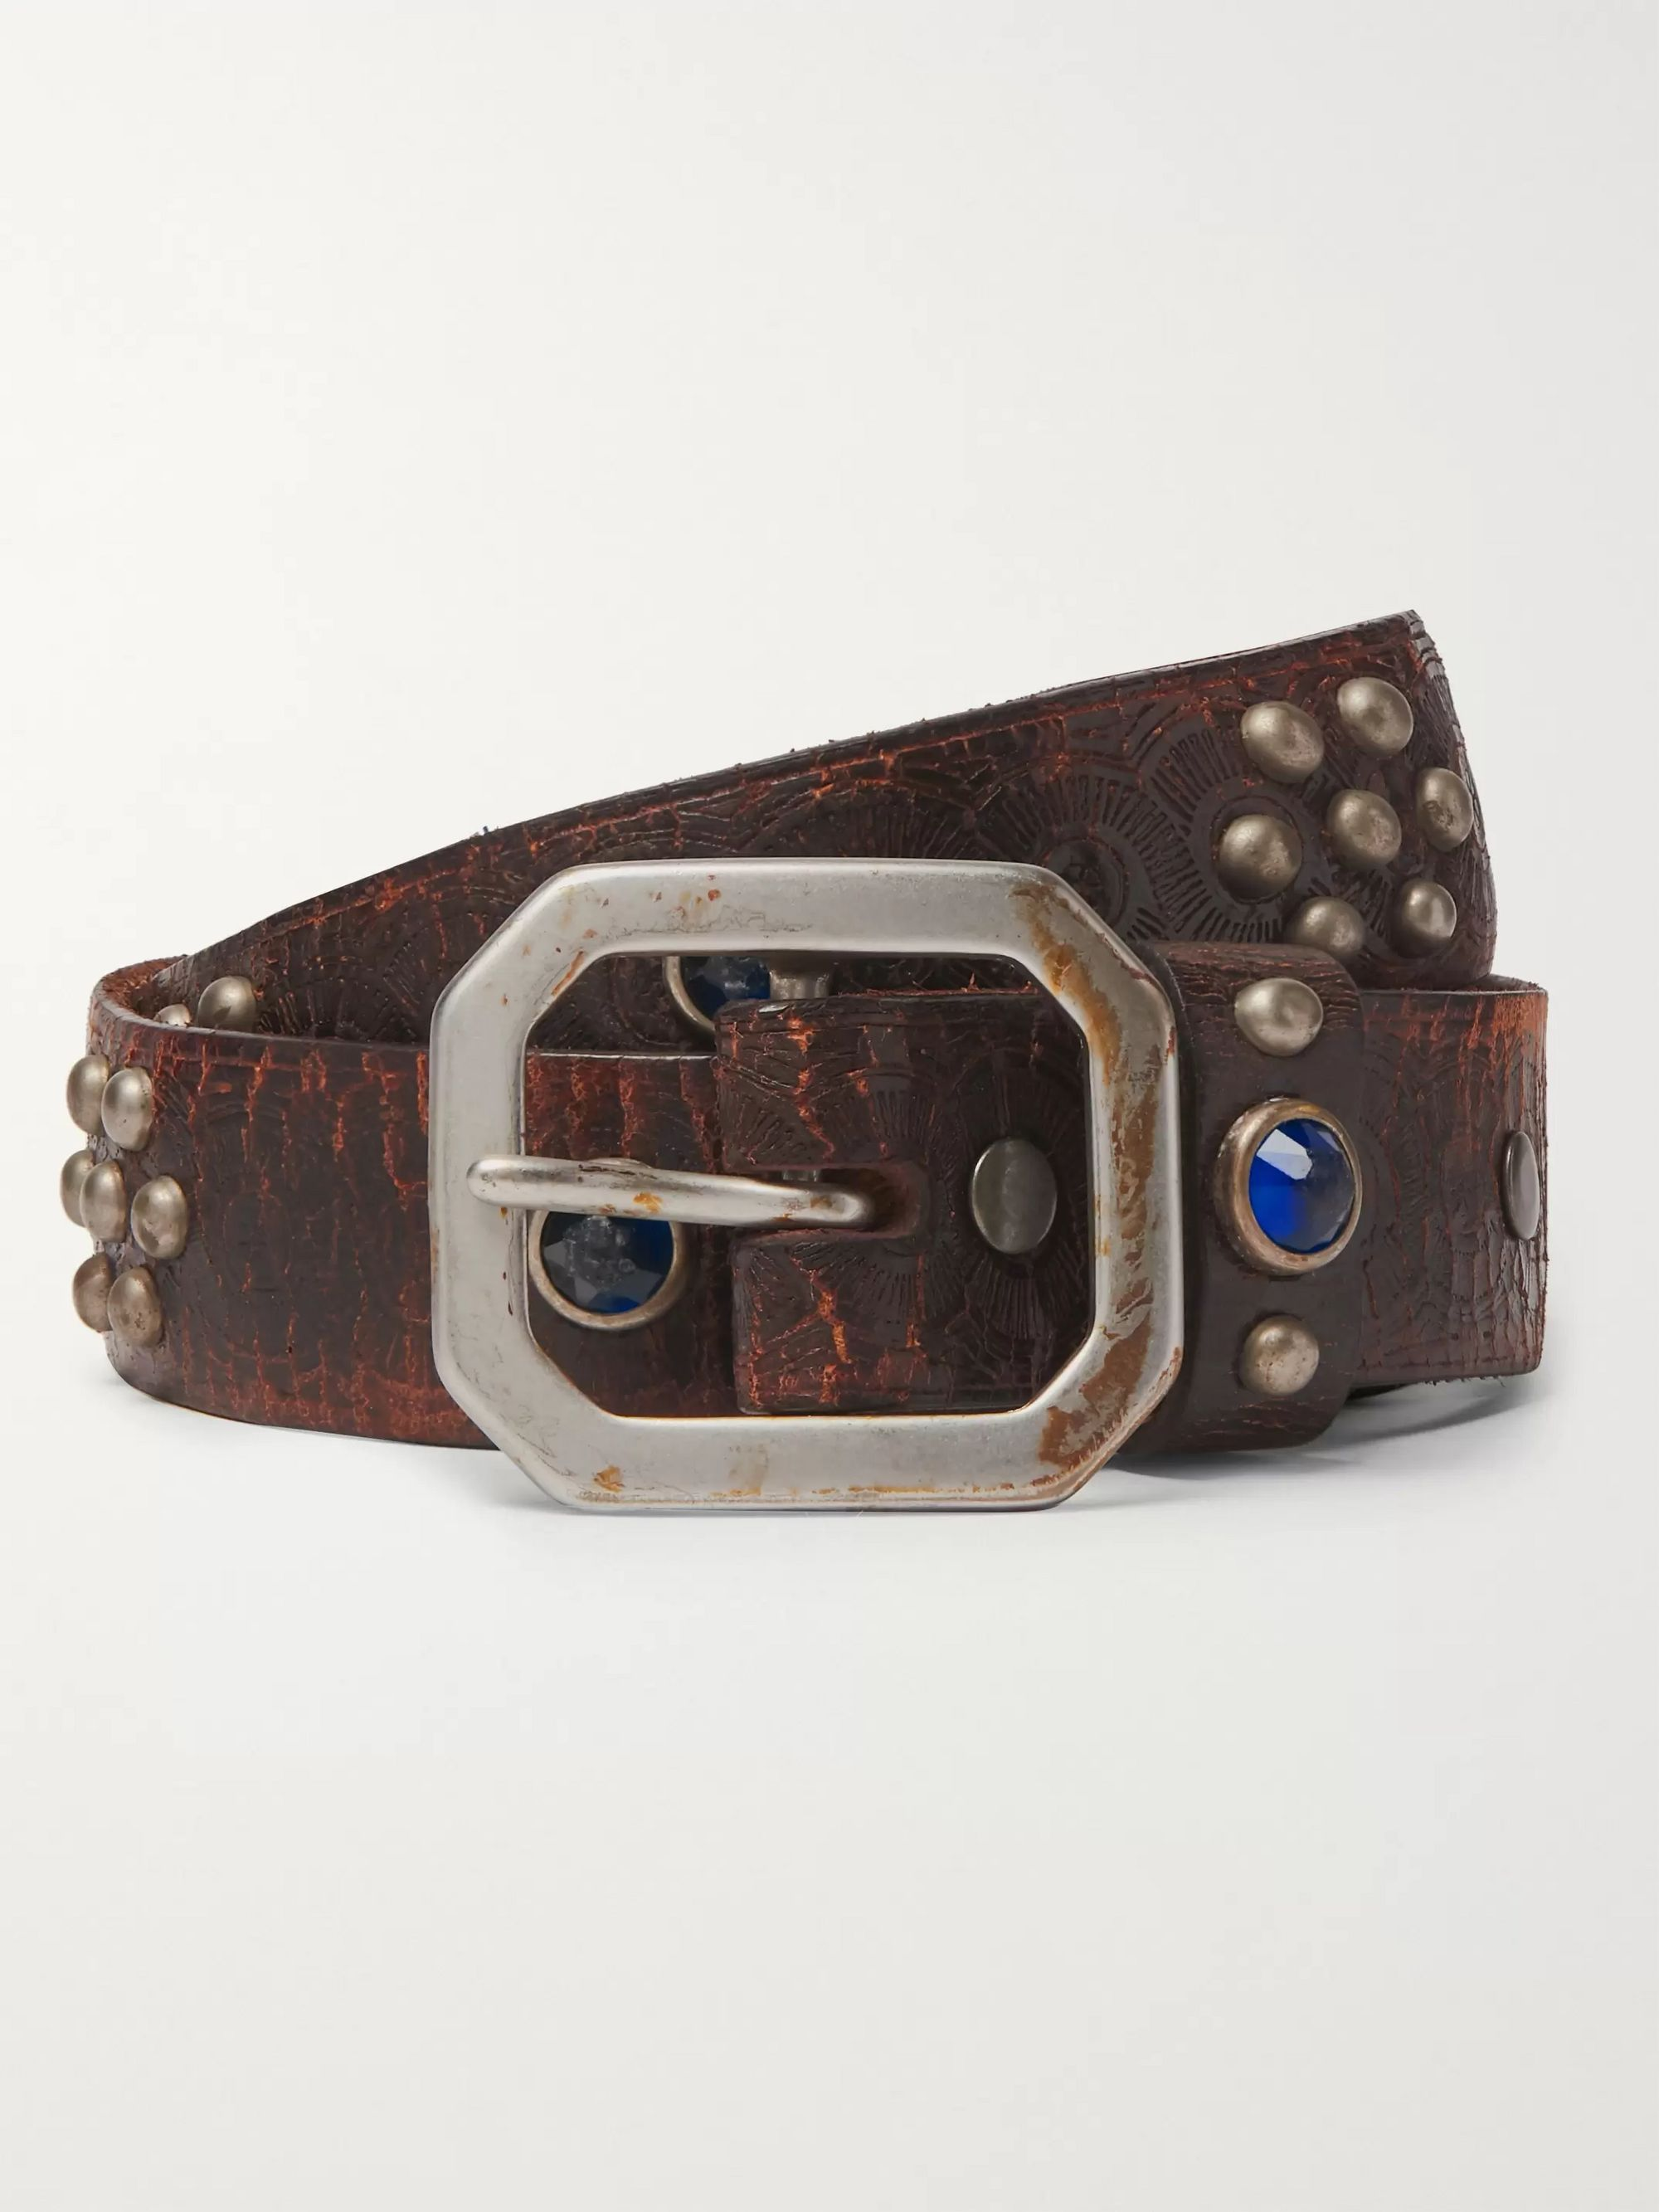 3cm Distressed Embellished Leather Belt by Rrl